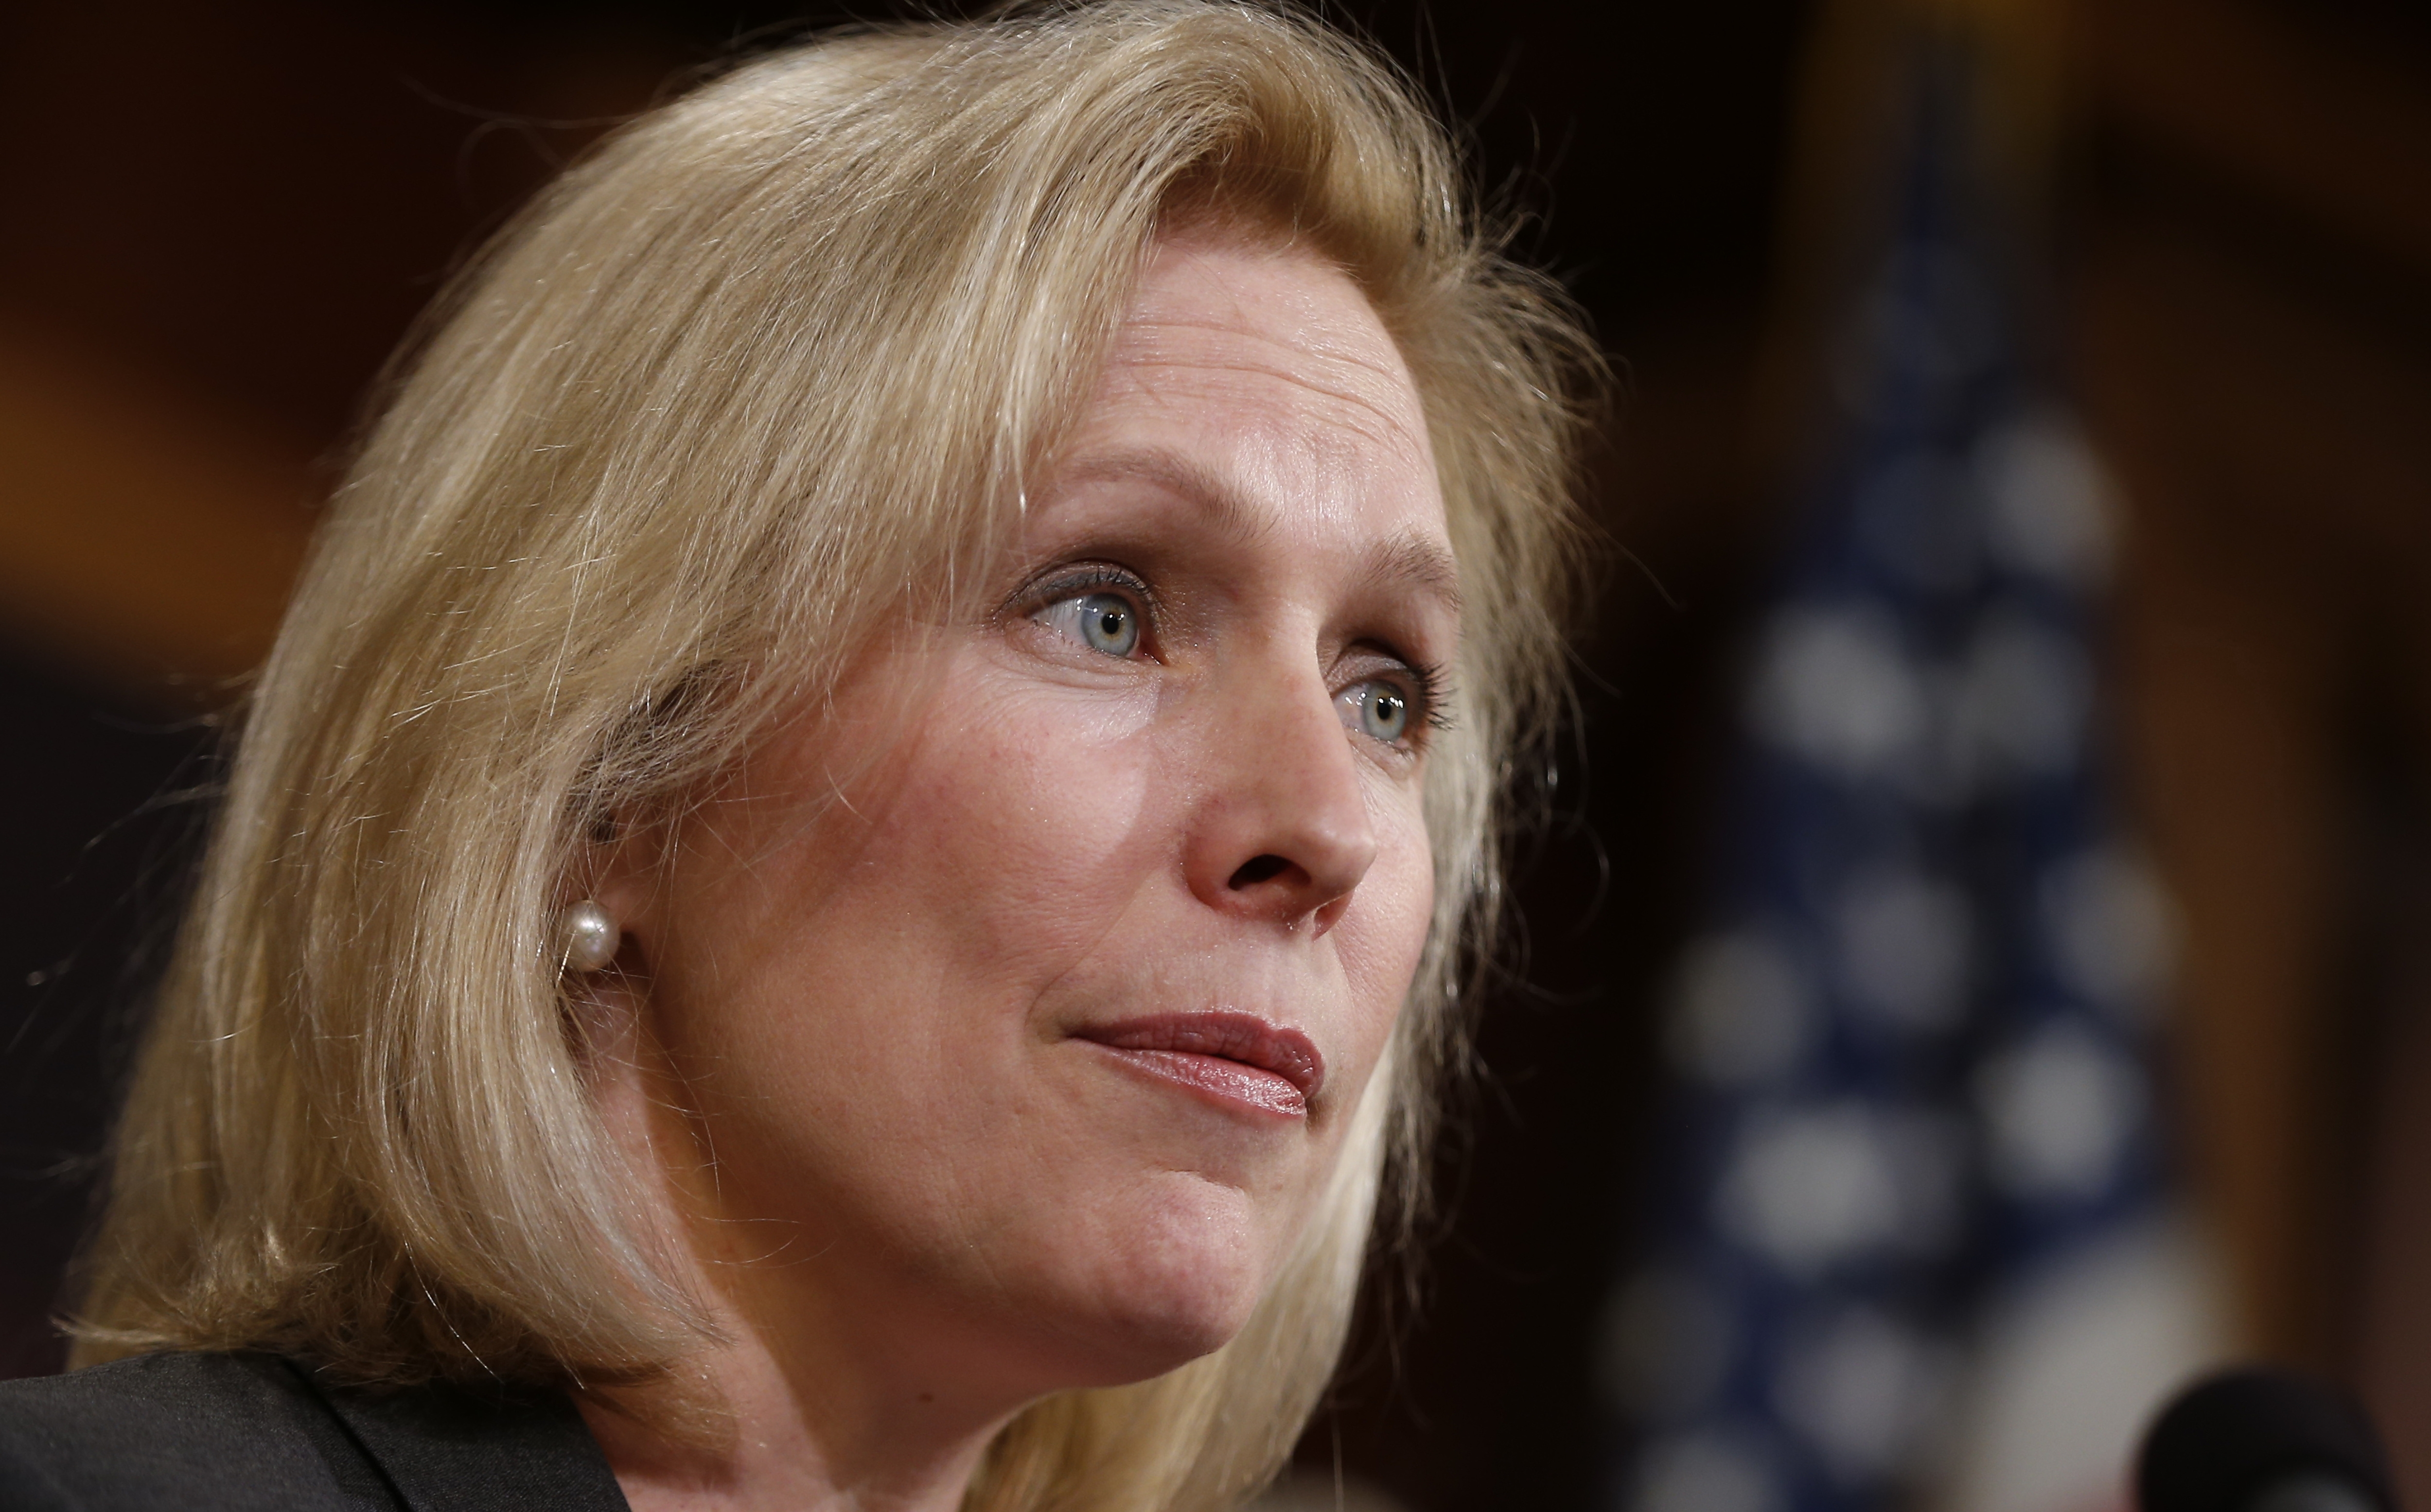 Sen. Kirsten Gillibrand has made a major issue of the military's failure to reform the way it responds to sexual assaults in the armed forces. (AP photo)